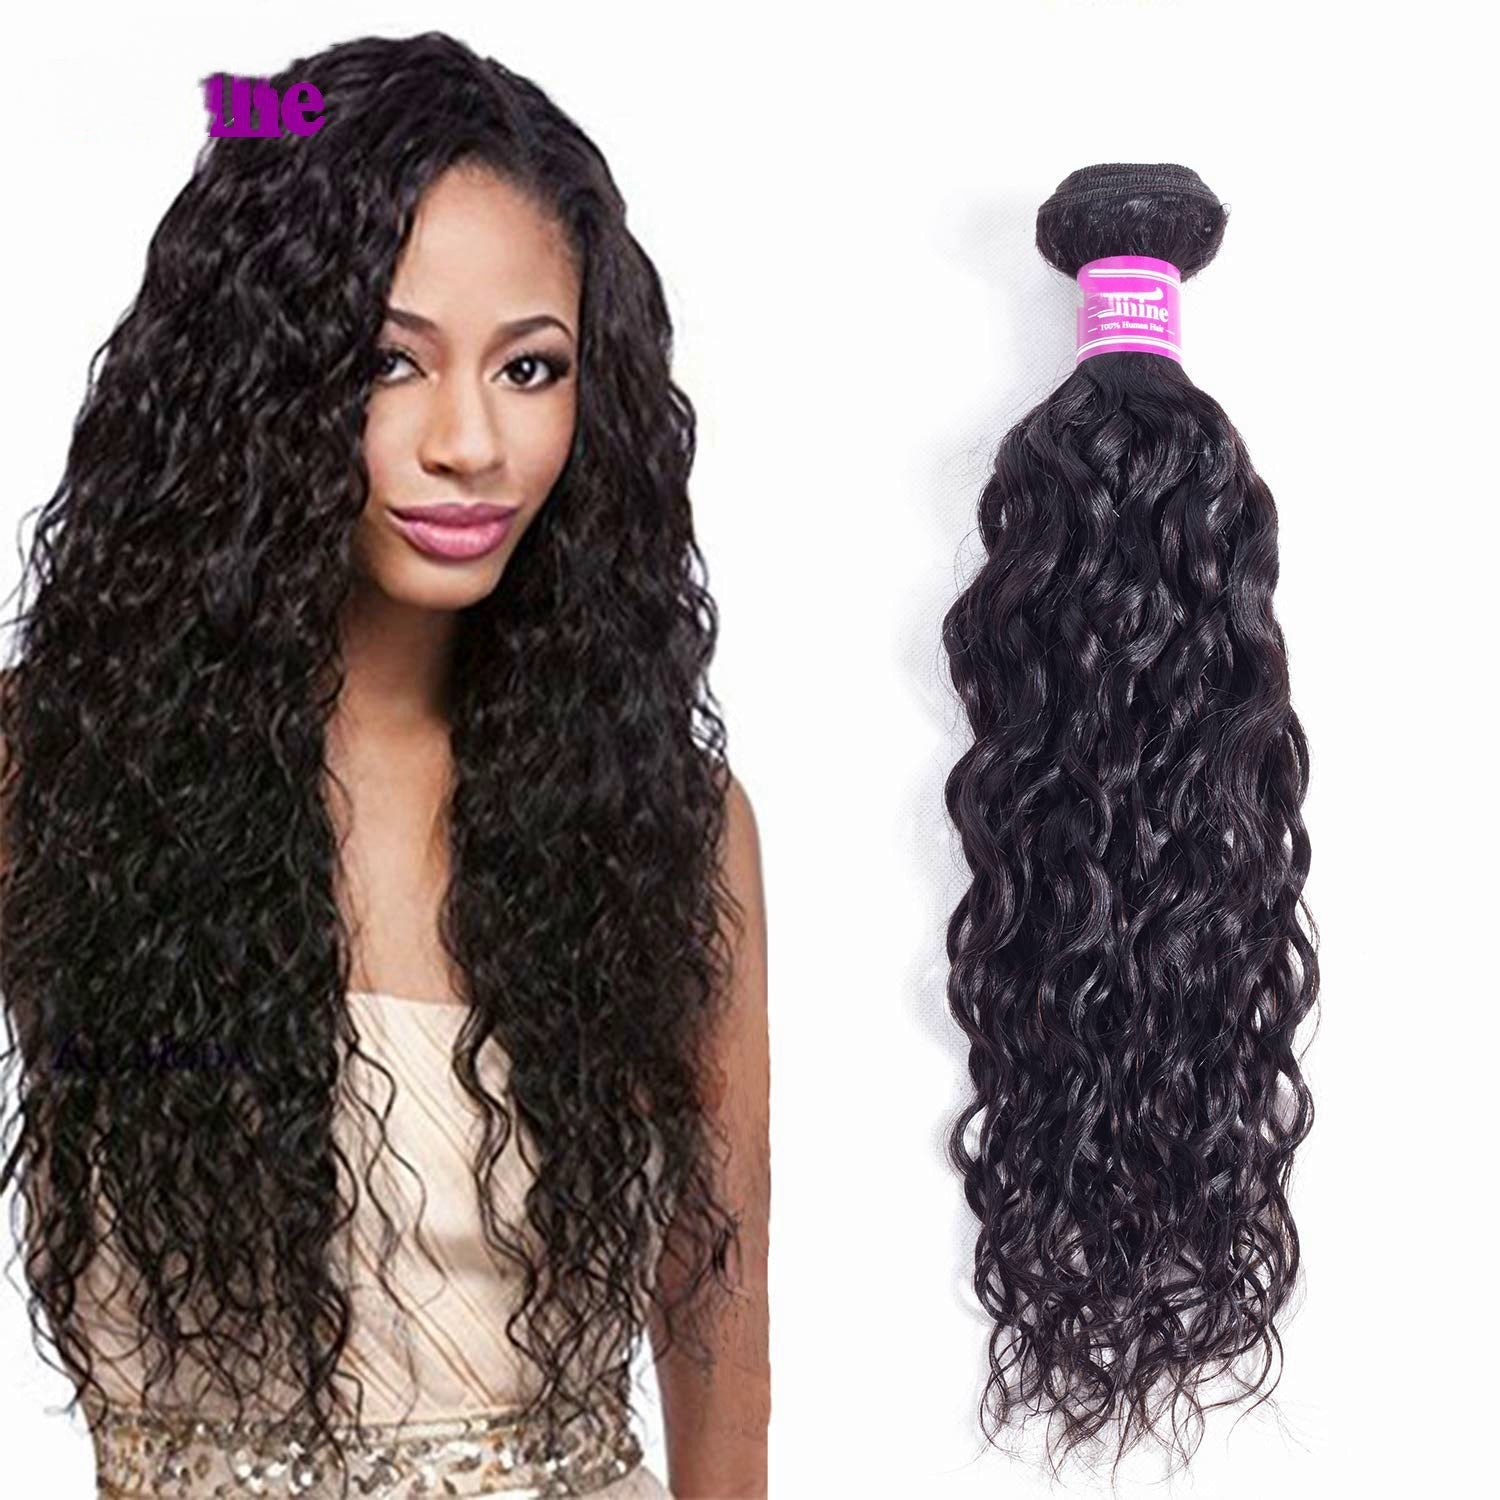 LETMESHINE 1B NATURAL COLOR NATURAL WAVE UNPROCESSED VIRGIN HUMAN HAIR WEAVE SINGLE BUNDLE - LetMeShine Hair